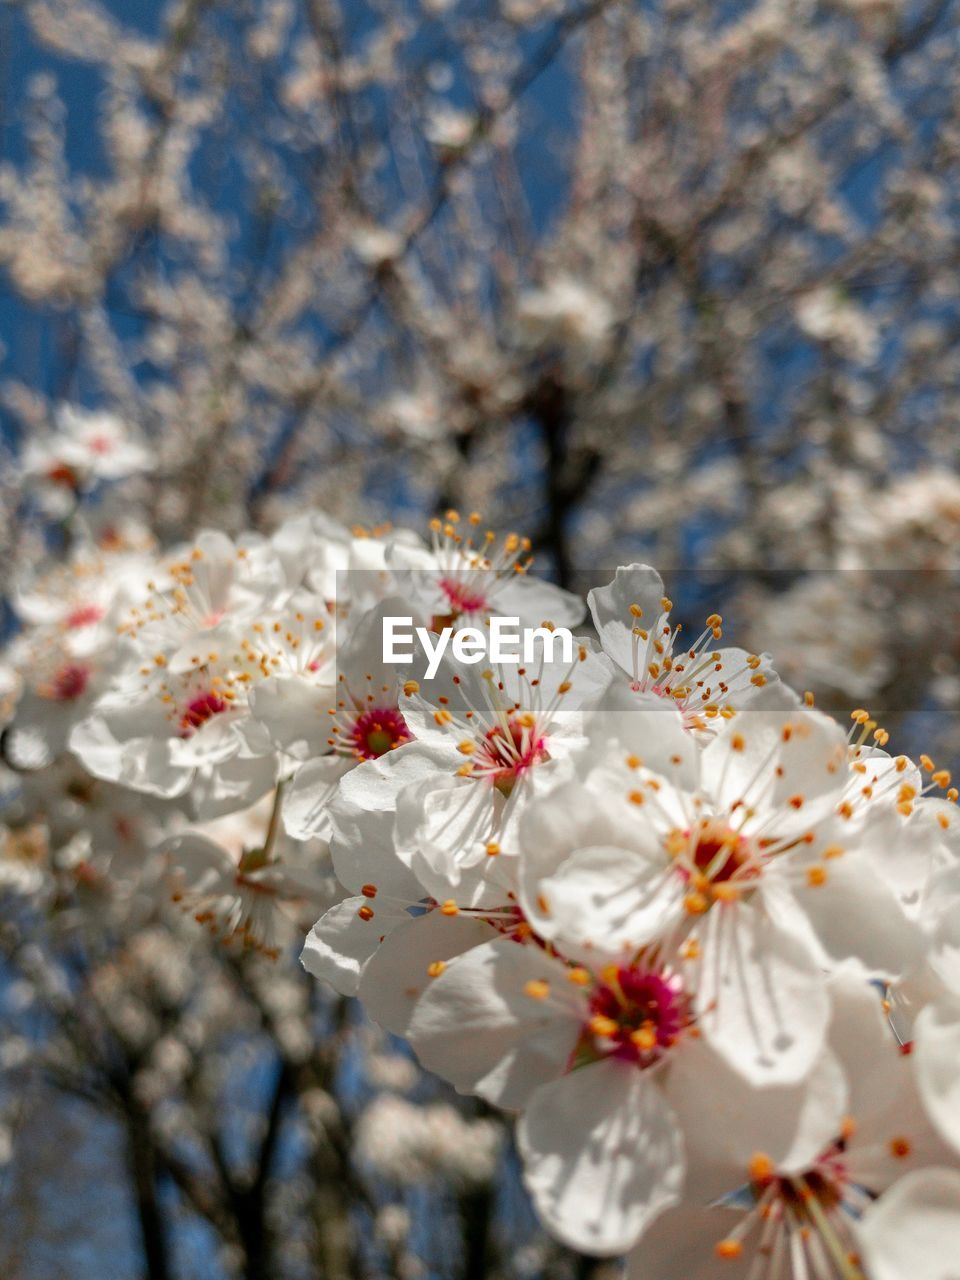 flowering plant, flower, plant, fragility, vulnerability, freshness, springtime, tree, petal, growth, blossom, beauty in nature, white color, close-up, cherry blossom, day, branch, nature, flower head, pollen, no people, outdoors, cherry tree, spring